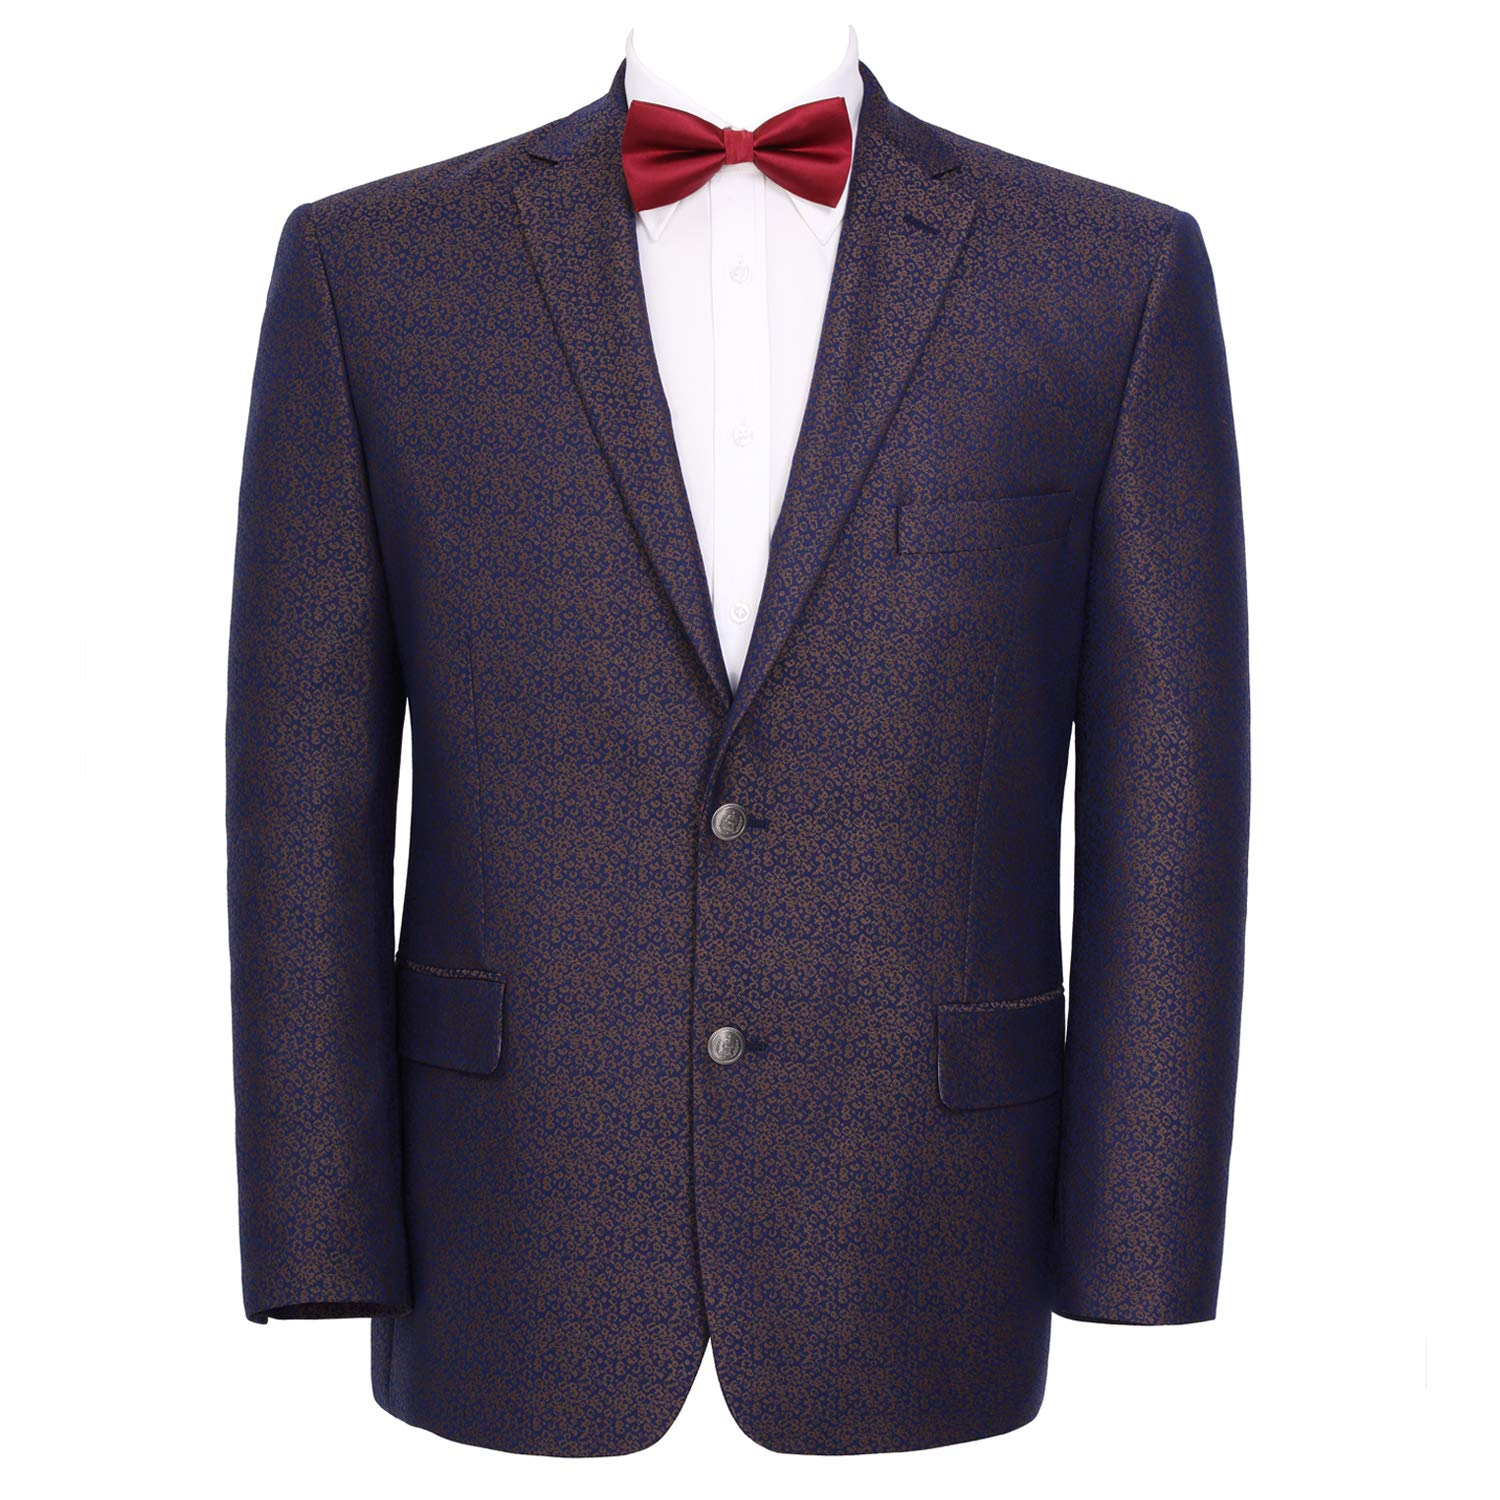 Pio Lorenzo Mens Classic Fit 2 Button Blazer Suit Separate Jacket